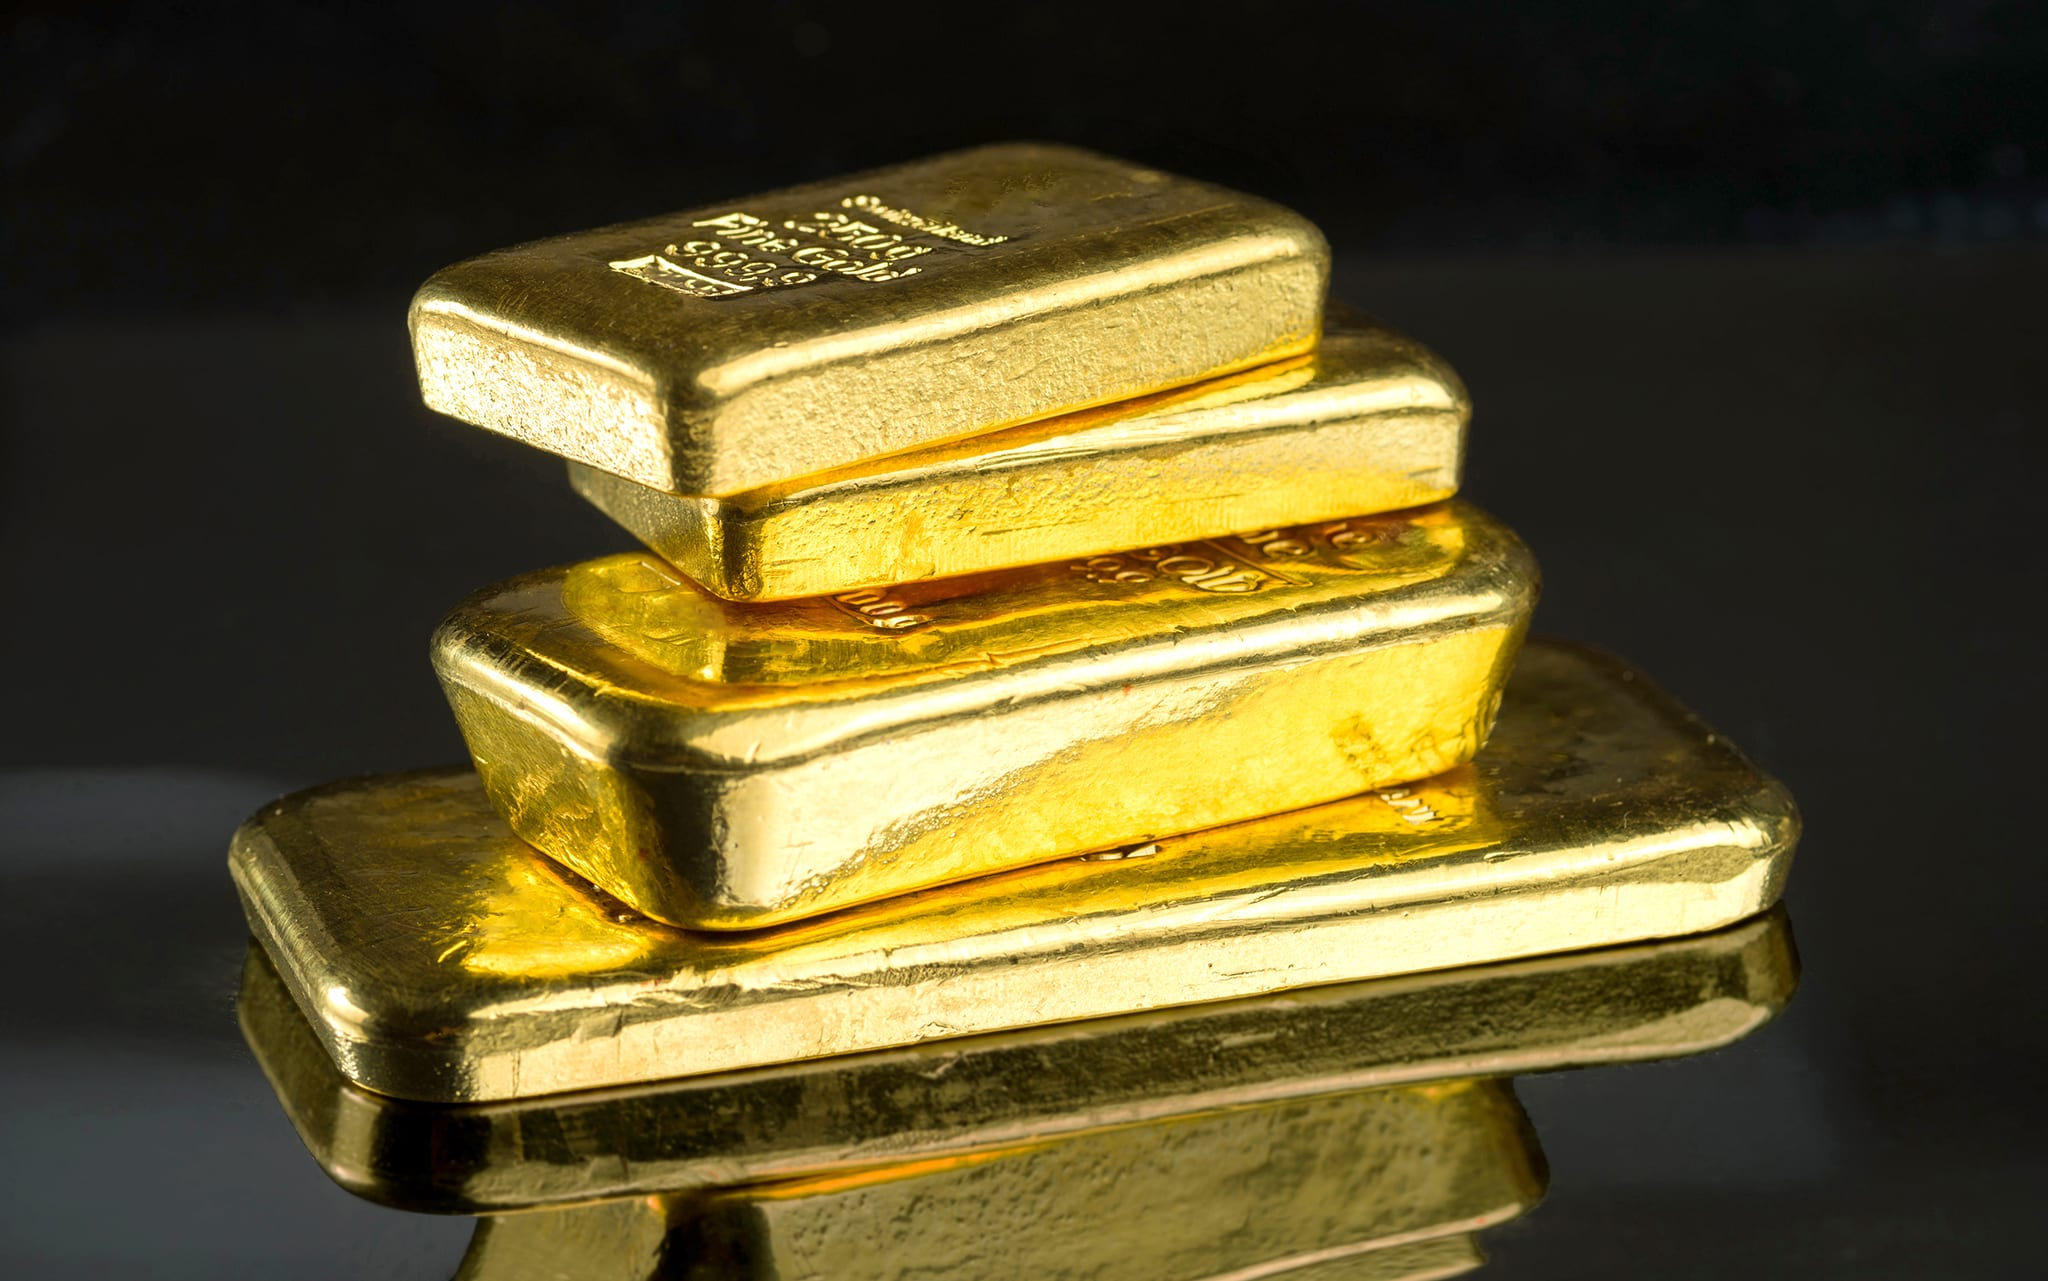 ramzs emporium has bullion available for puchase